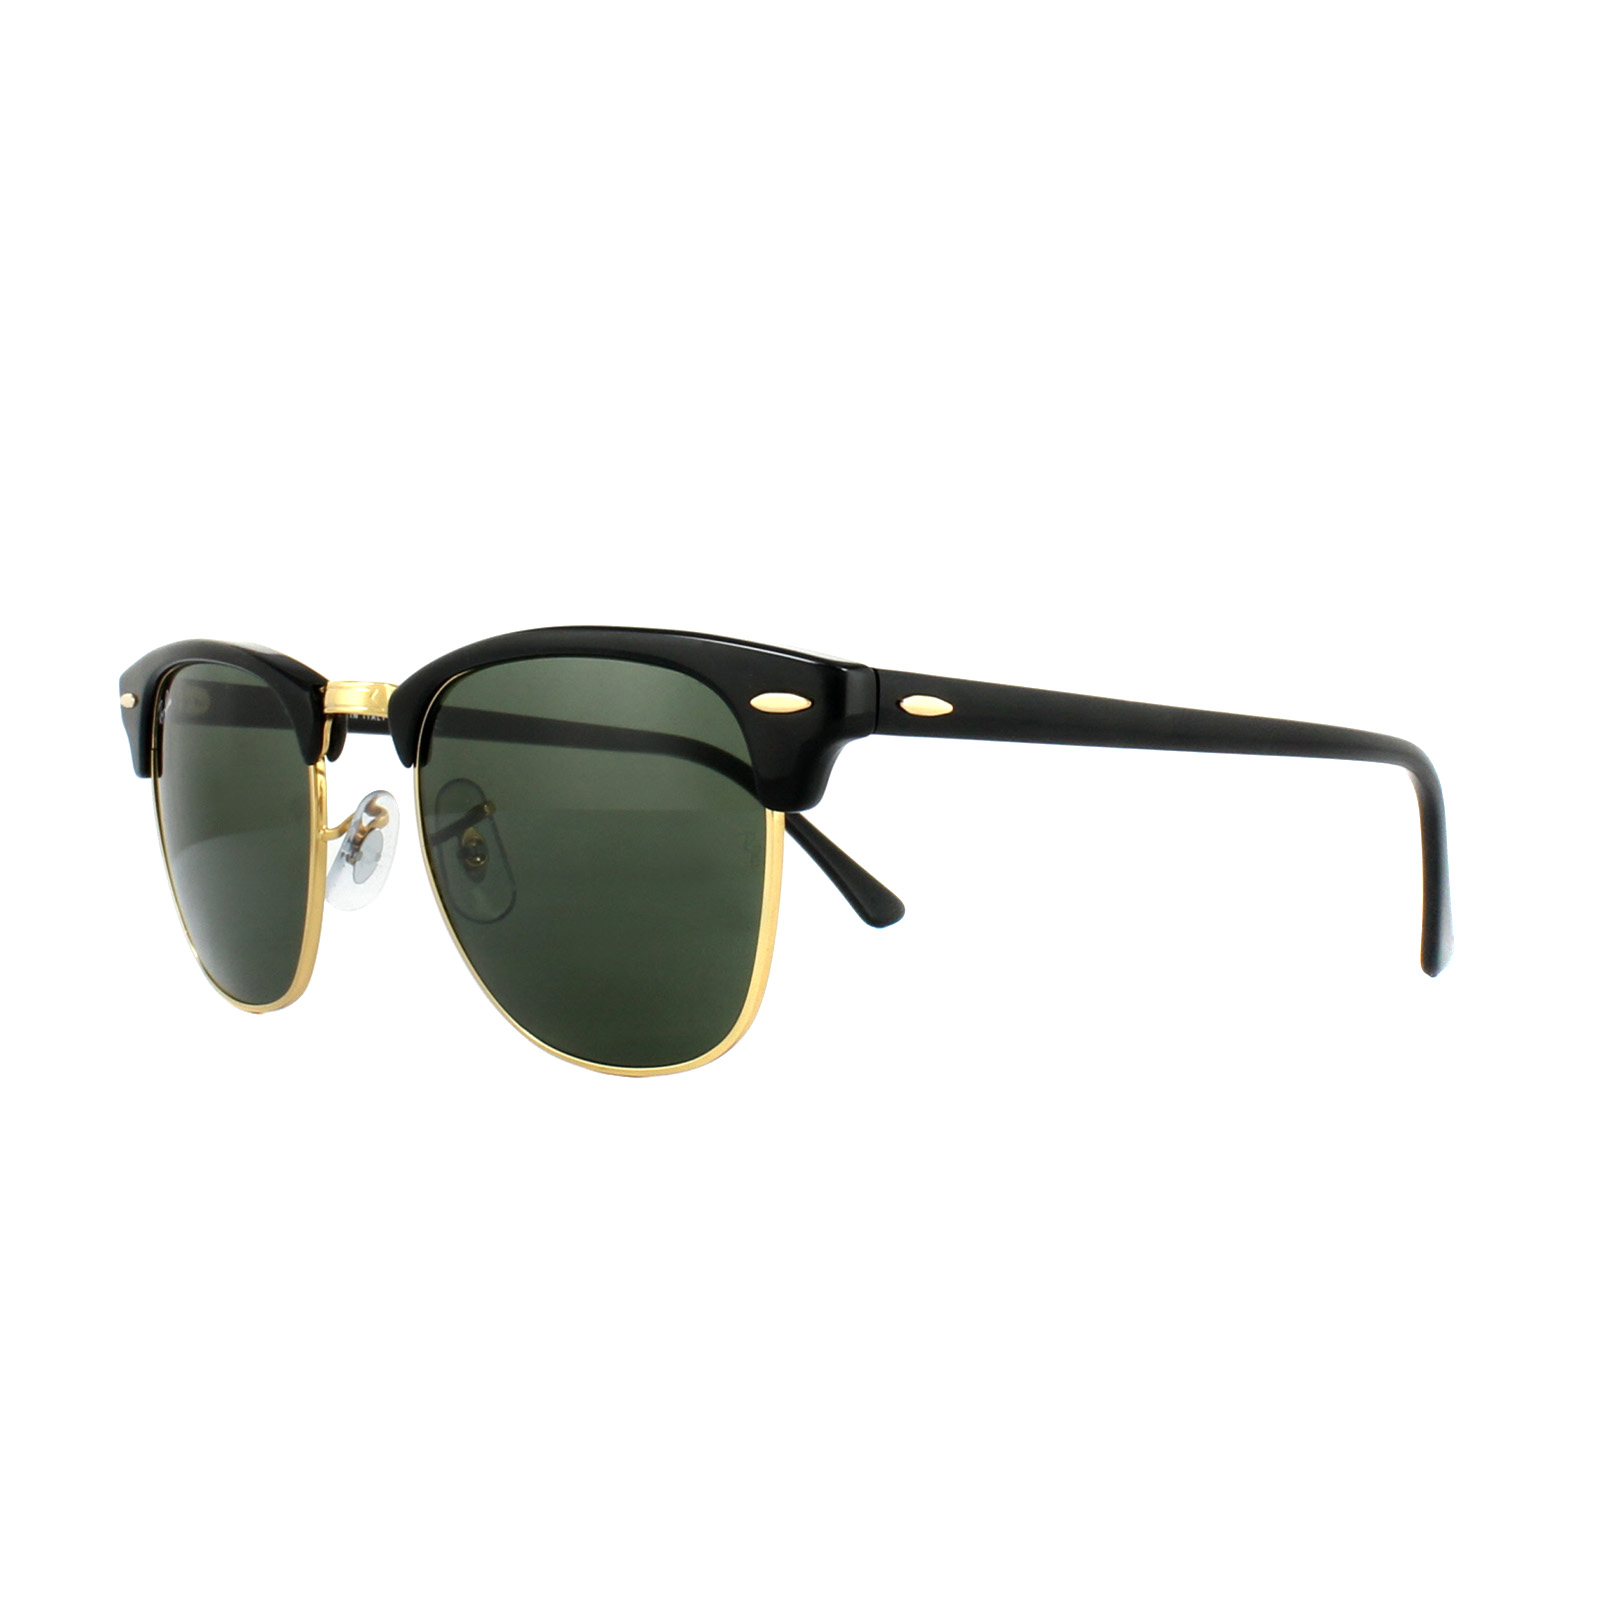 27151b48d3 Sentinel Ray-Ban Sunglasses Clubmaster 3016 W0365 Black Green G-15 Large  51mm